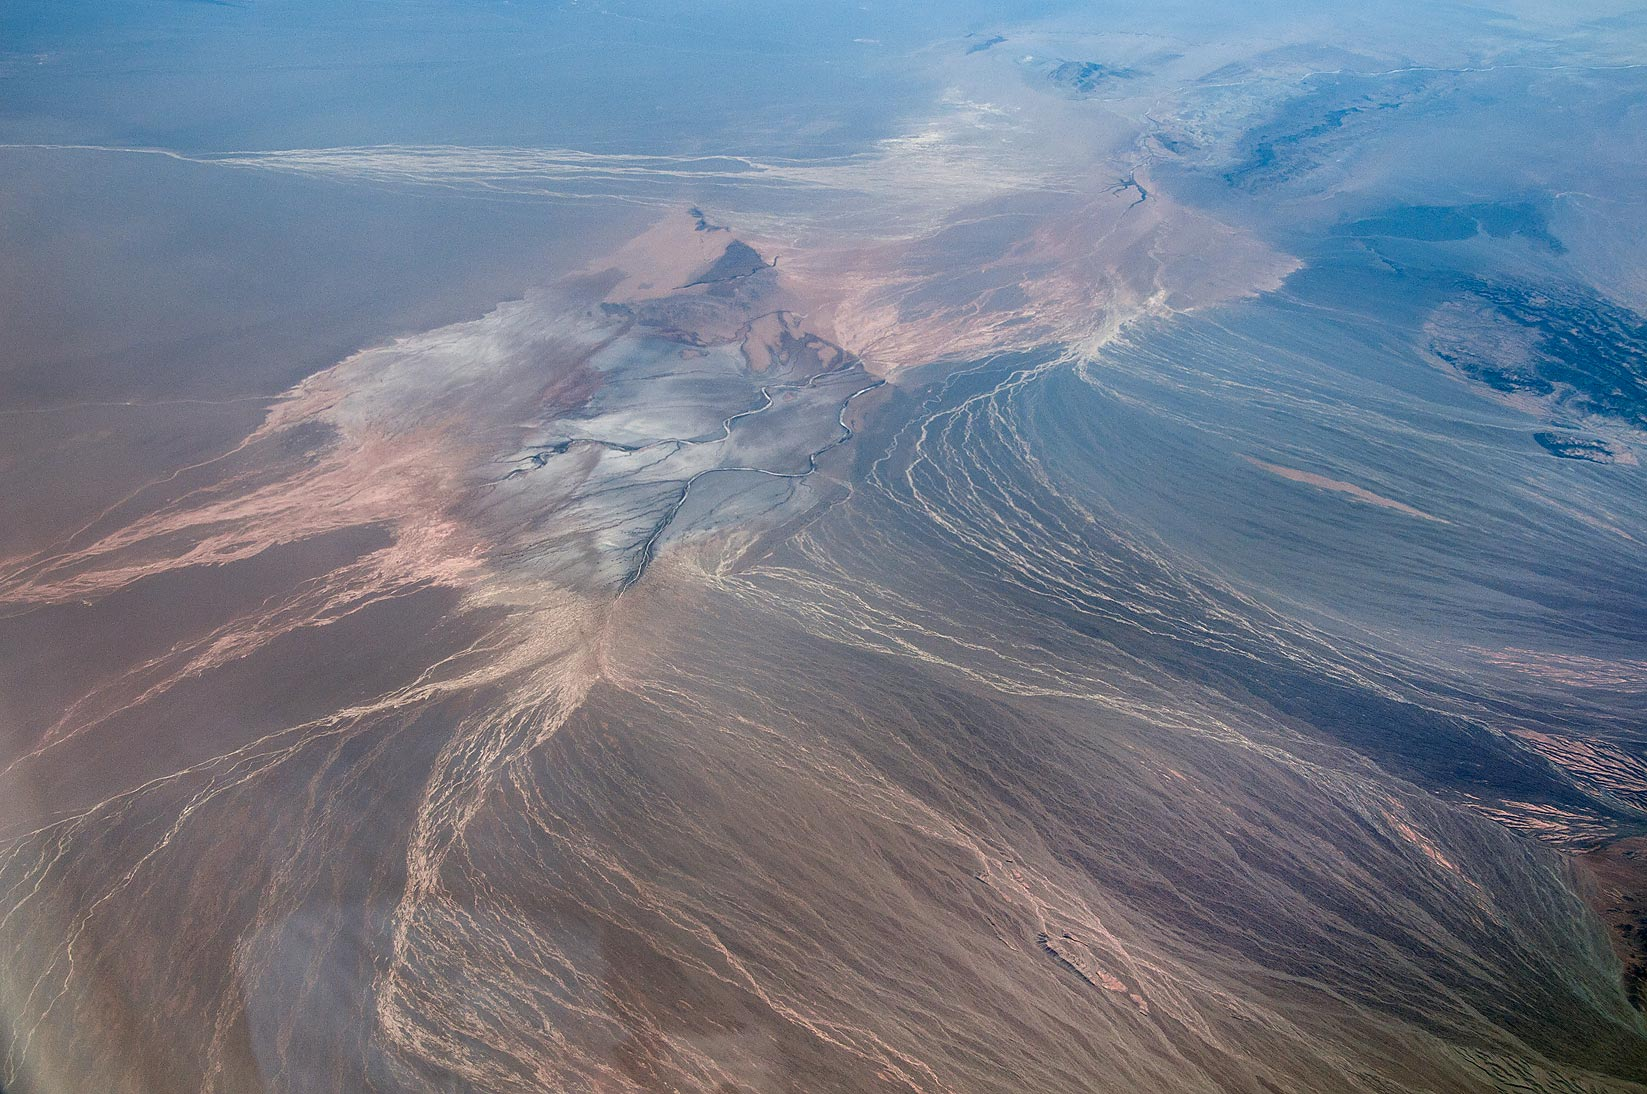 Desert in Iran, north-east of Ravar. View from a...a plane from Dubai, UAE to Houston, TX